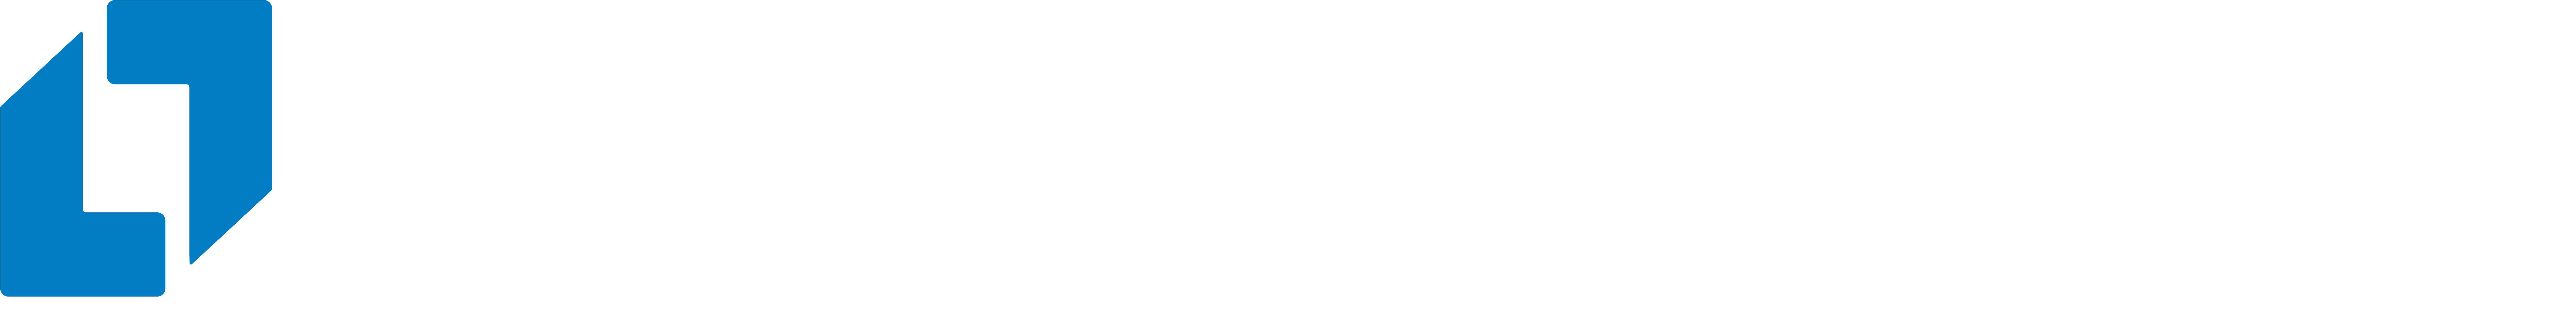 NextGenovation株式会社